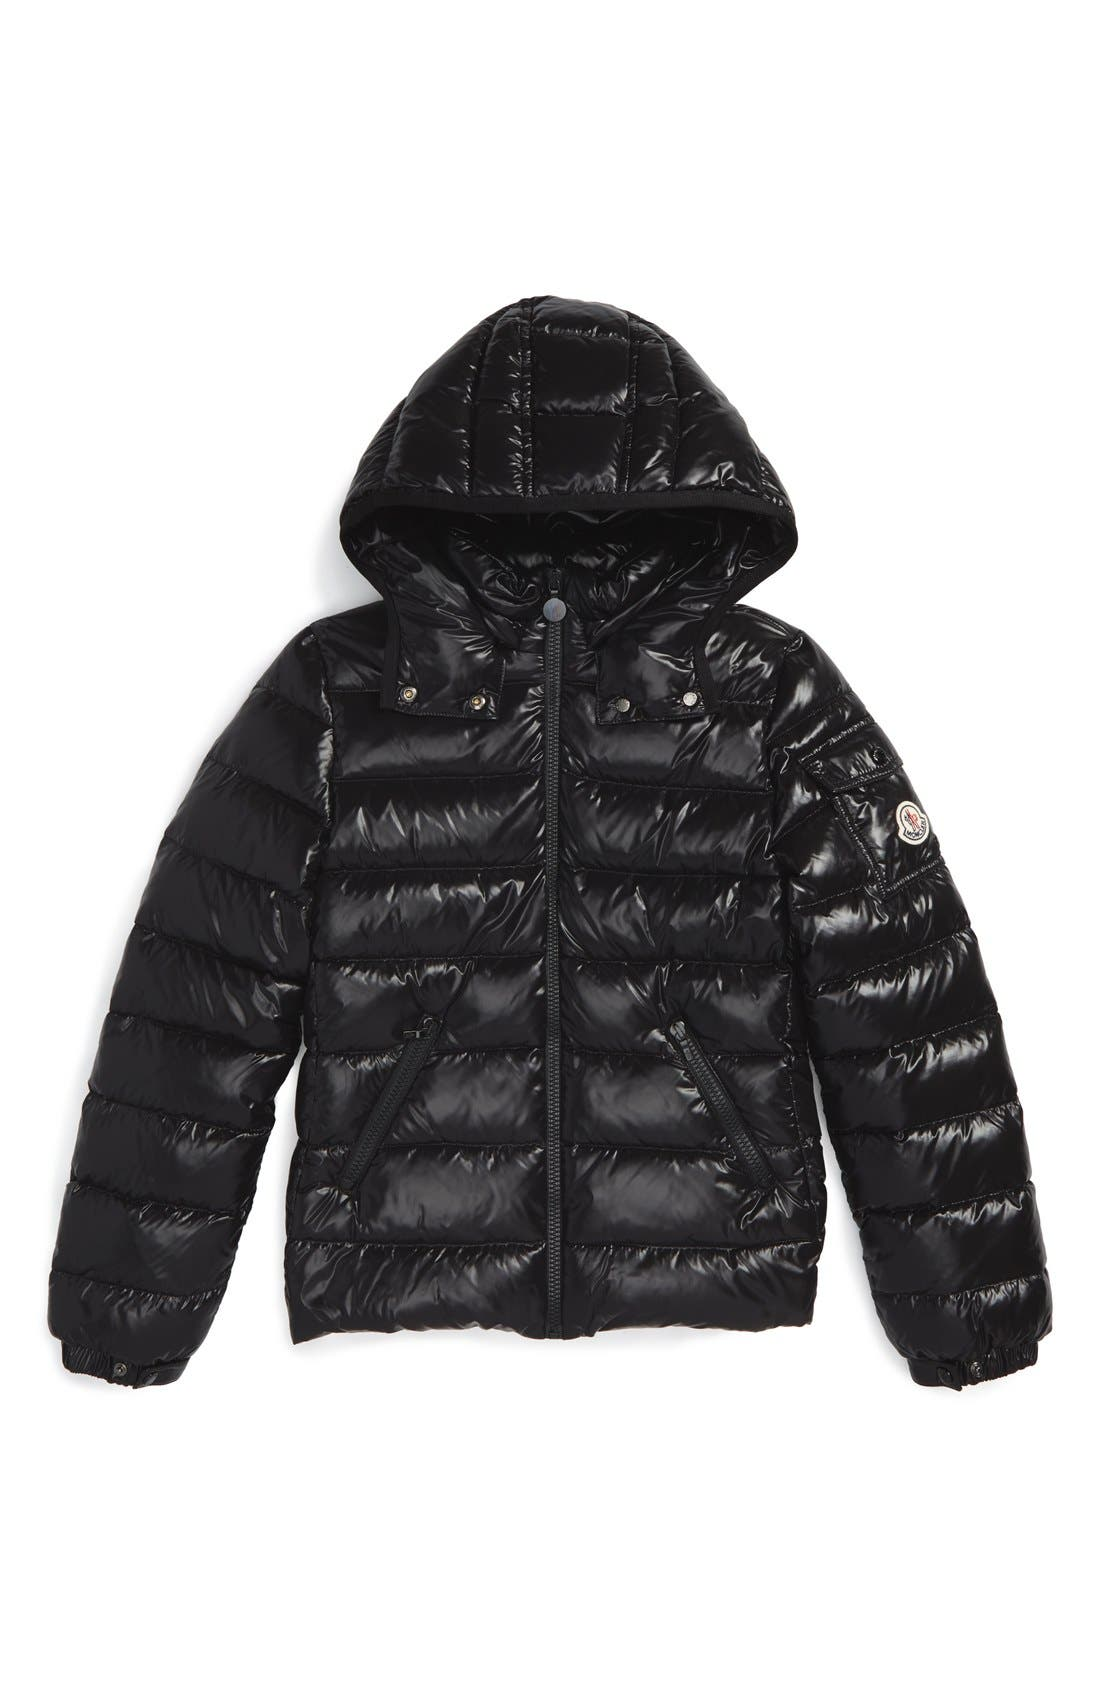 MONCLER 'Bady' Hooded Down Jacket